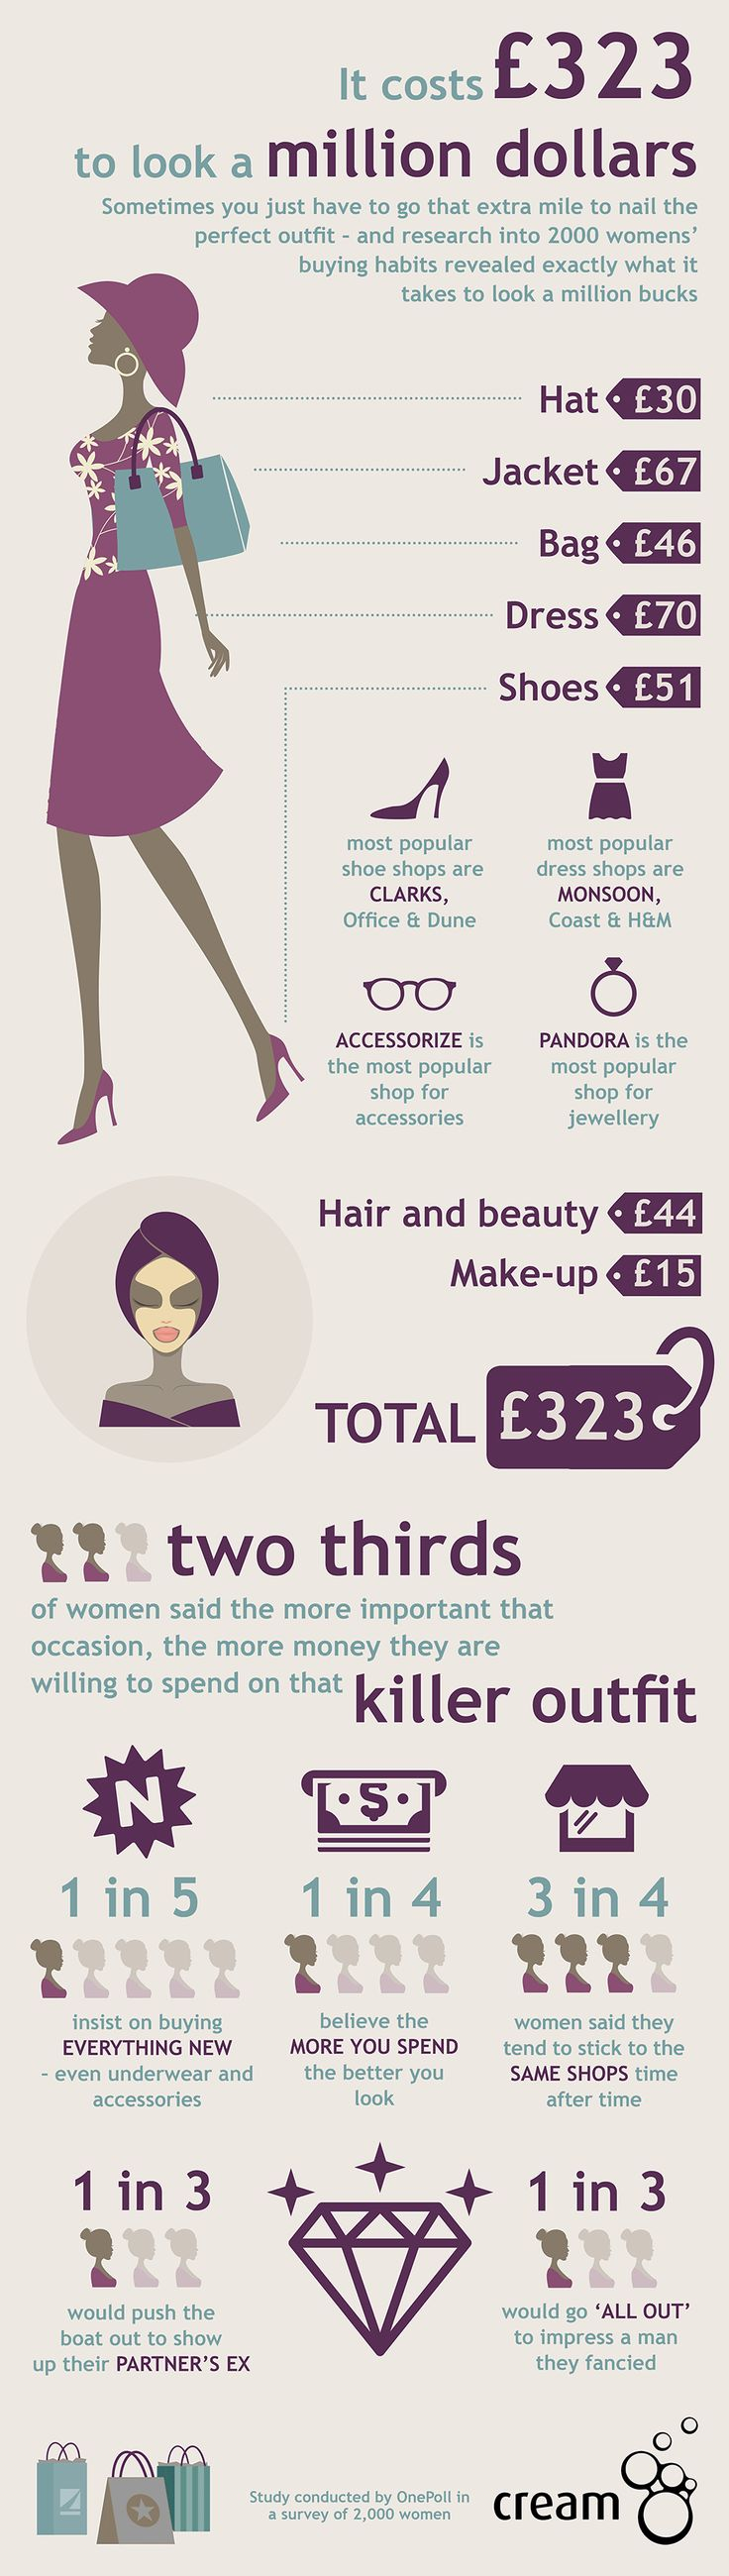 Women believe, amusingly, that it costs £323 to look a million dollars.